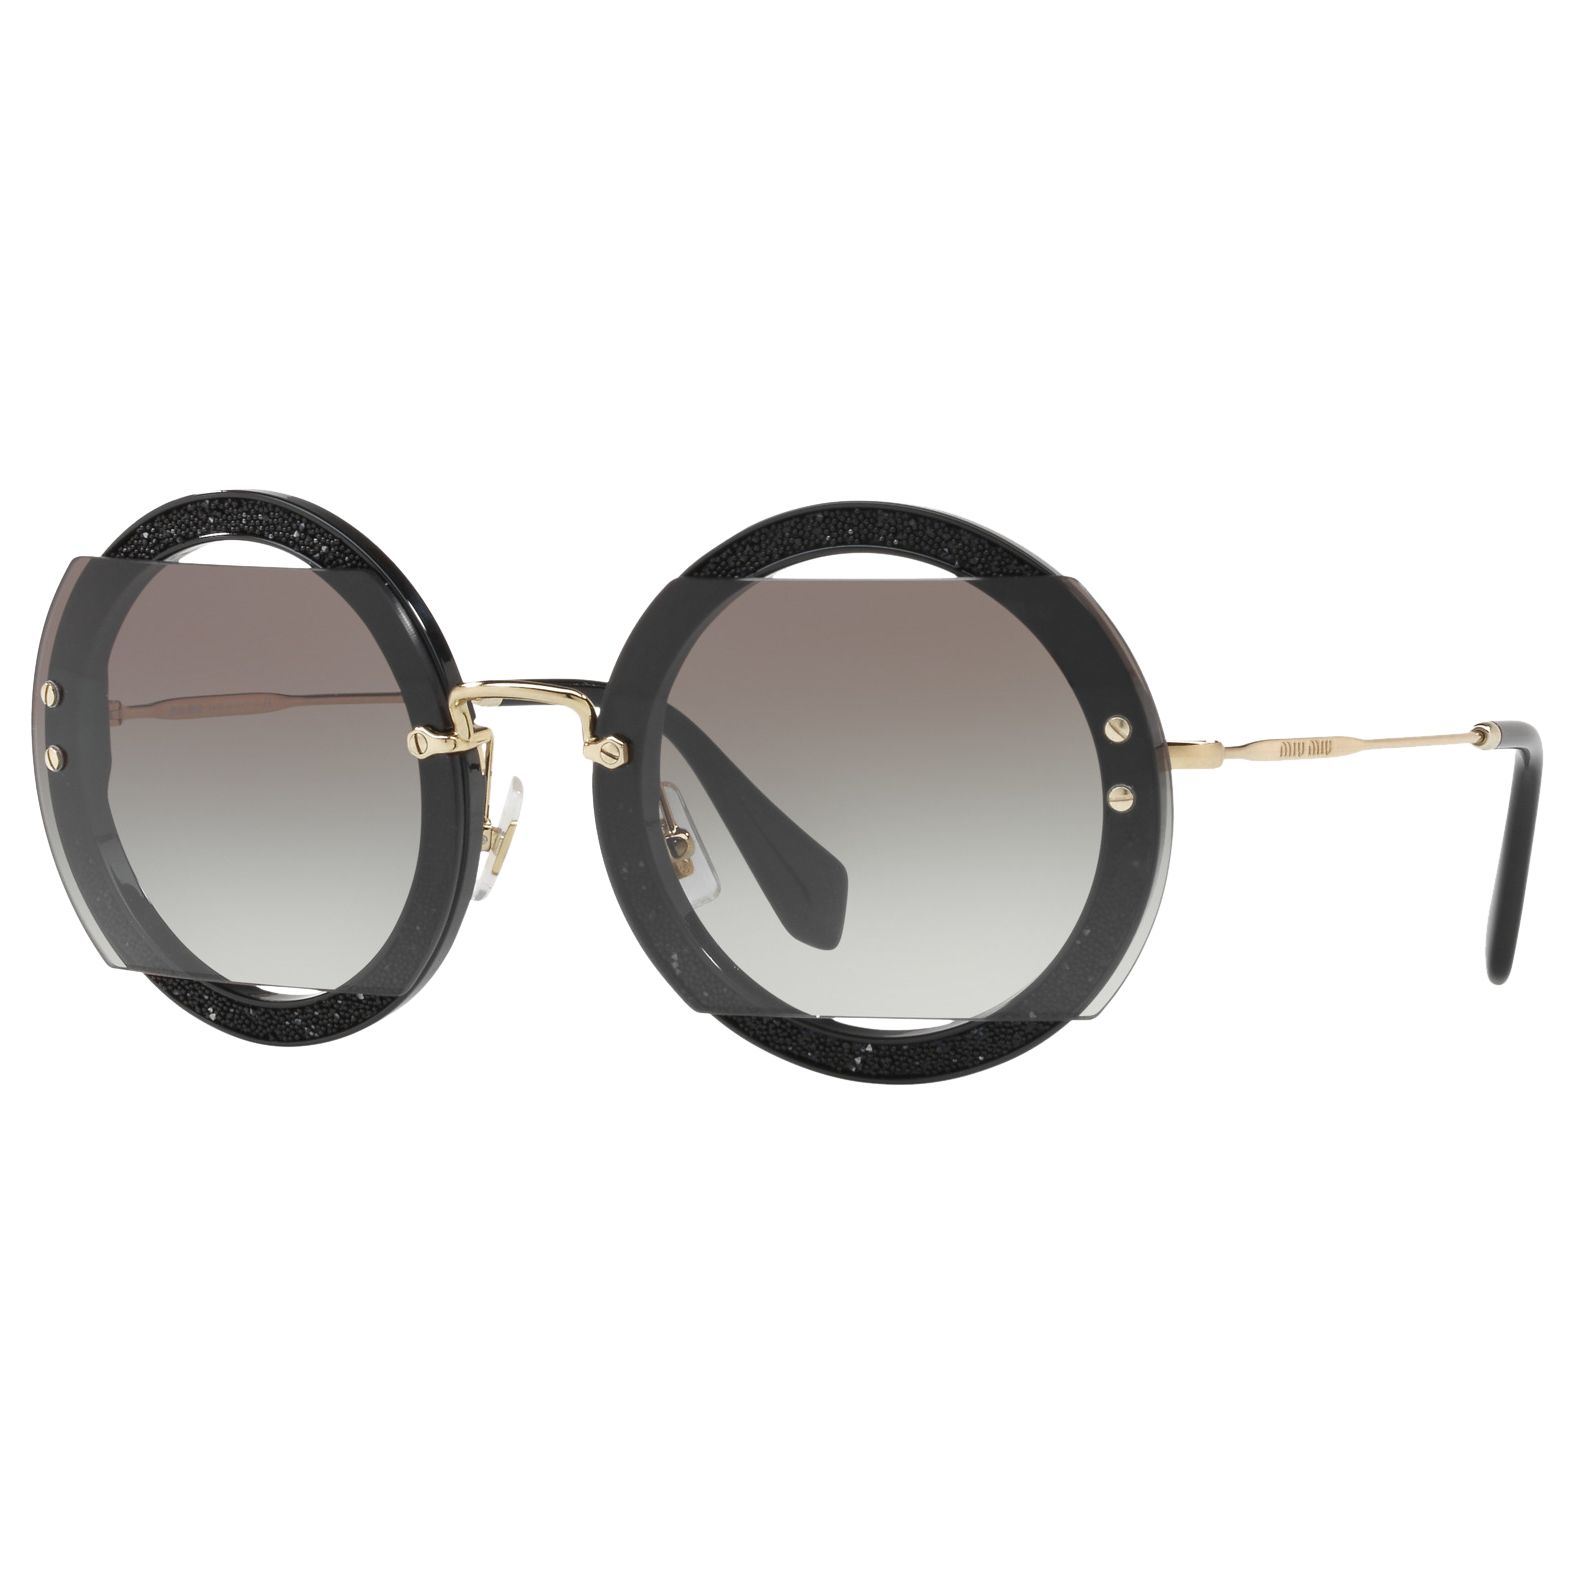 Miu Miu Miu Miu MU 06SS Round Beaded Sunglasses, Black